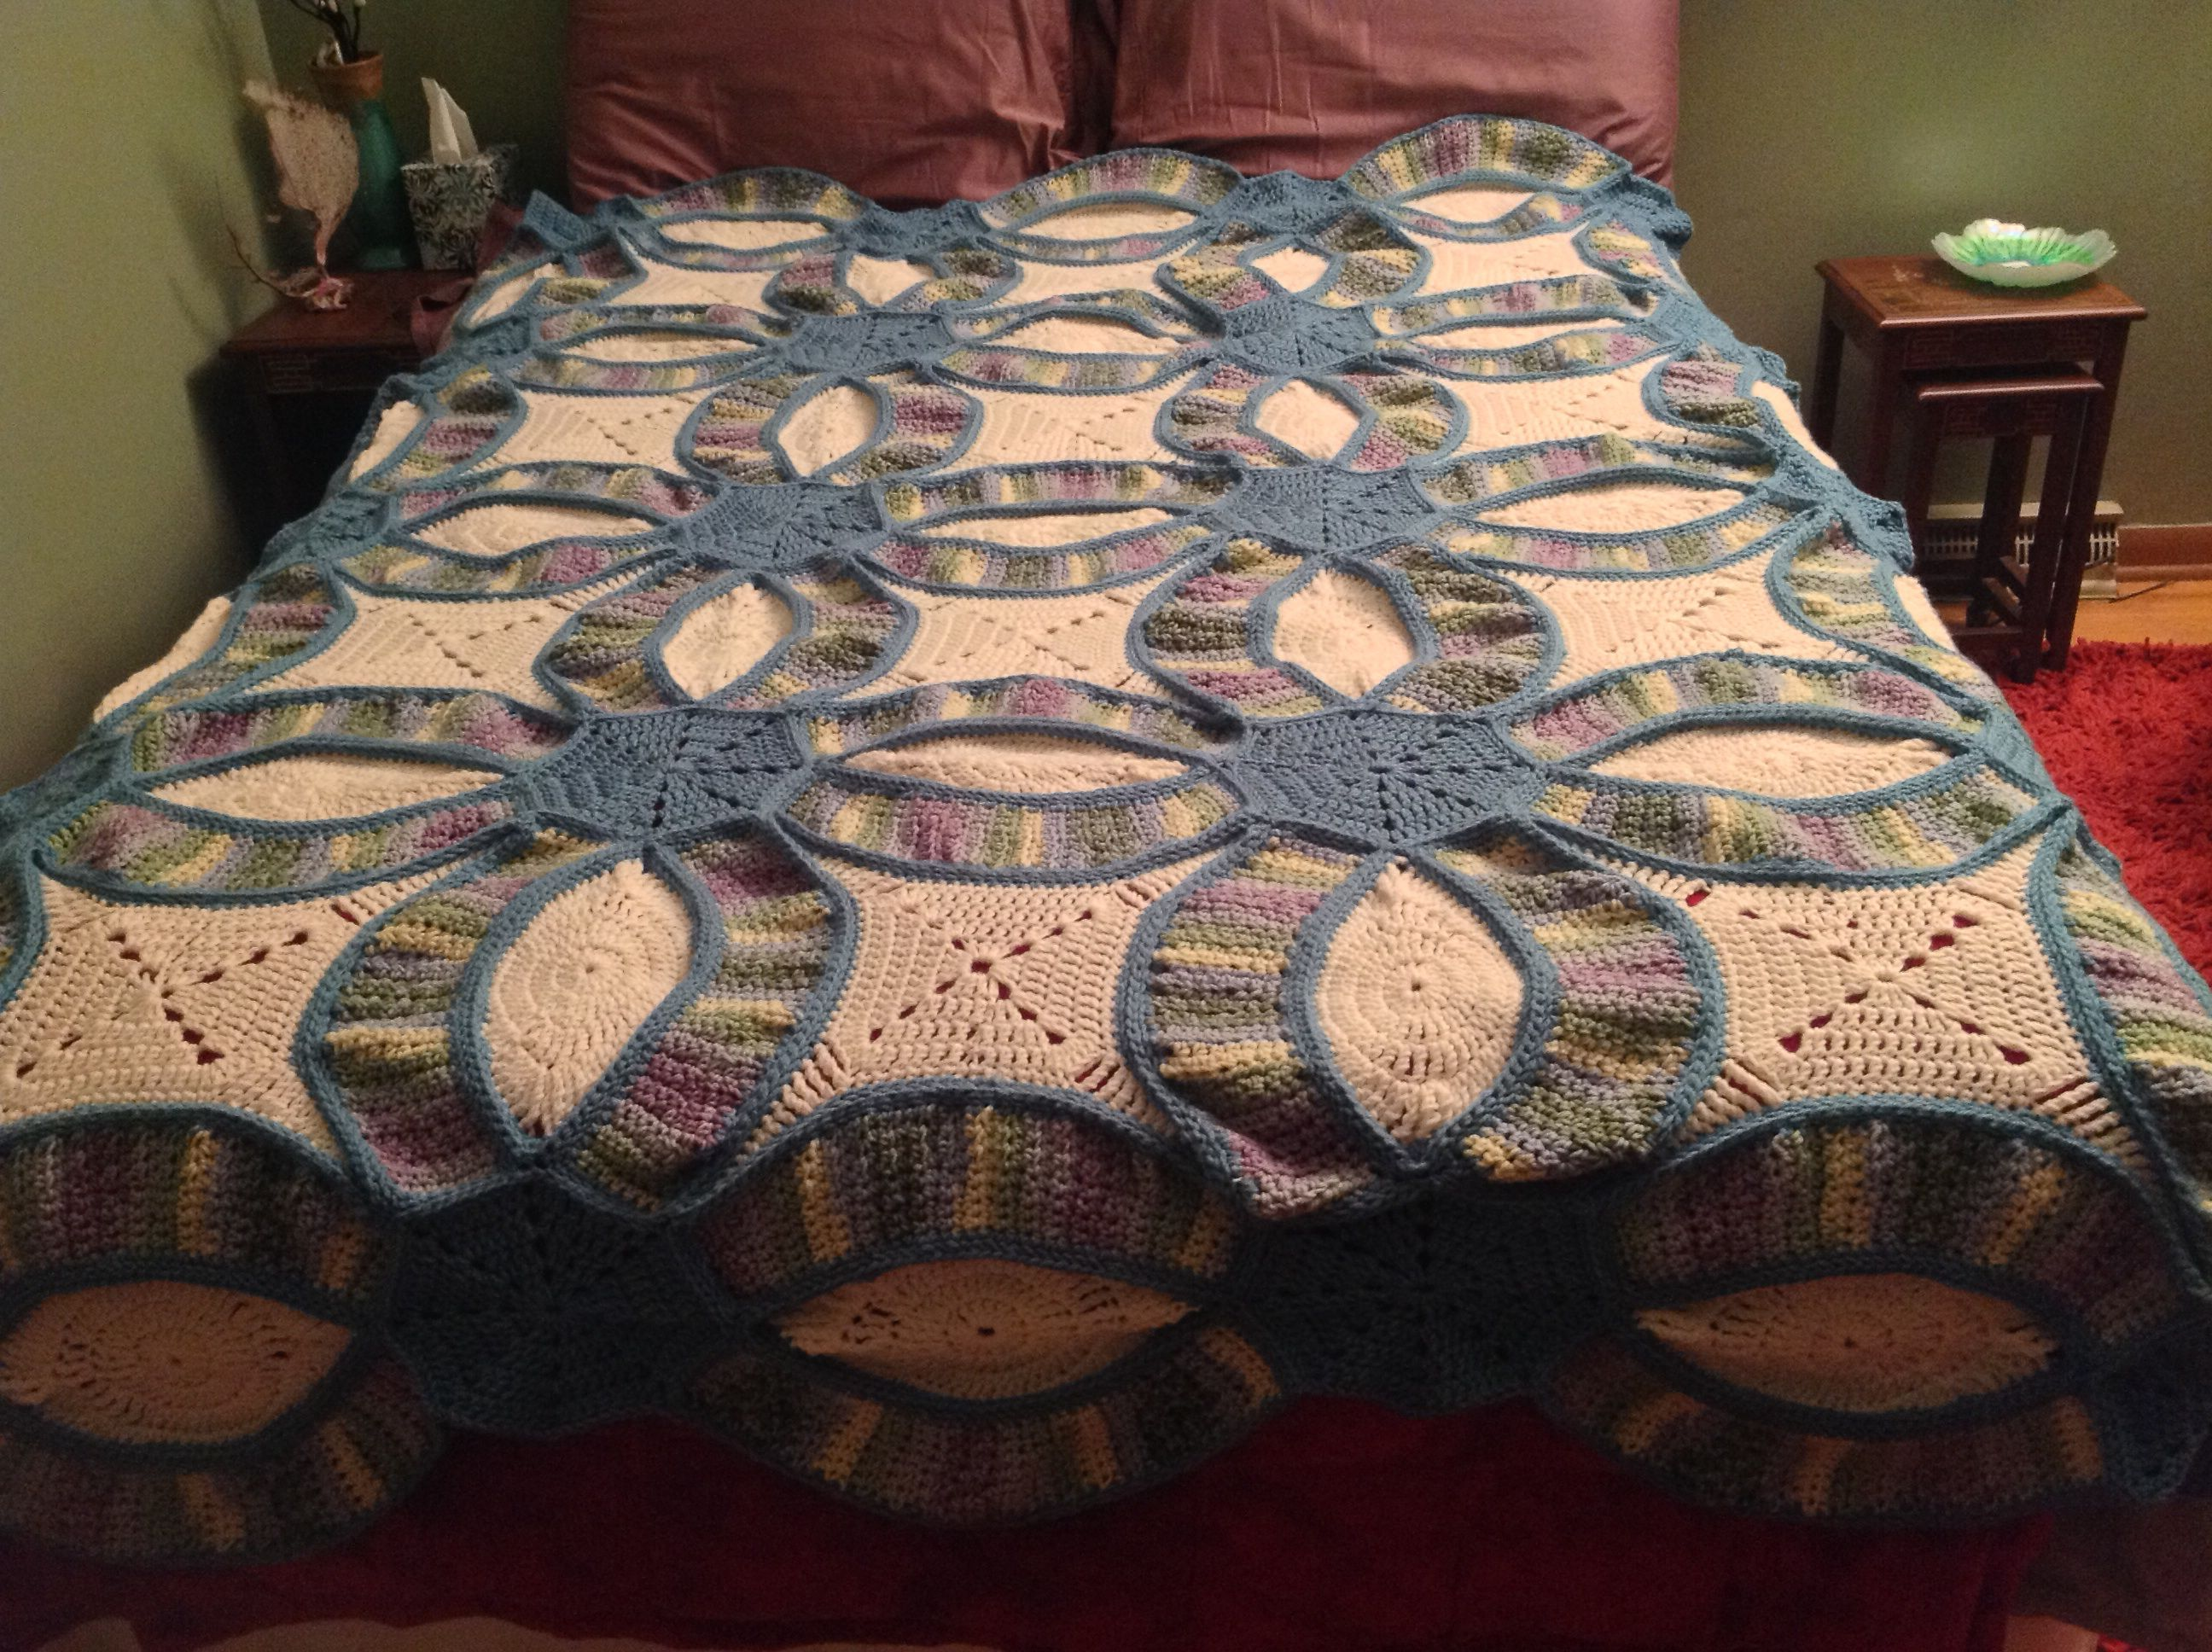 Crochet Double Wedding ring quilt. Queen size, shown on